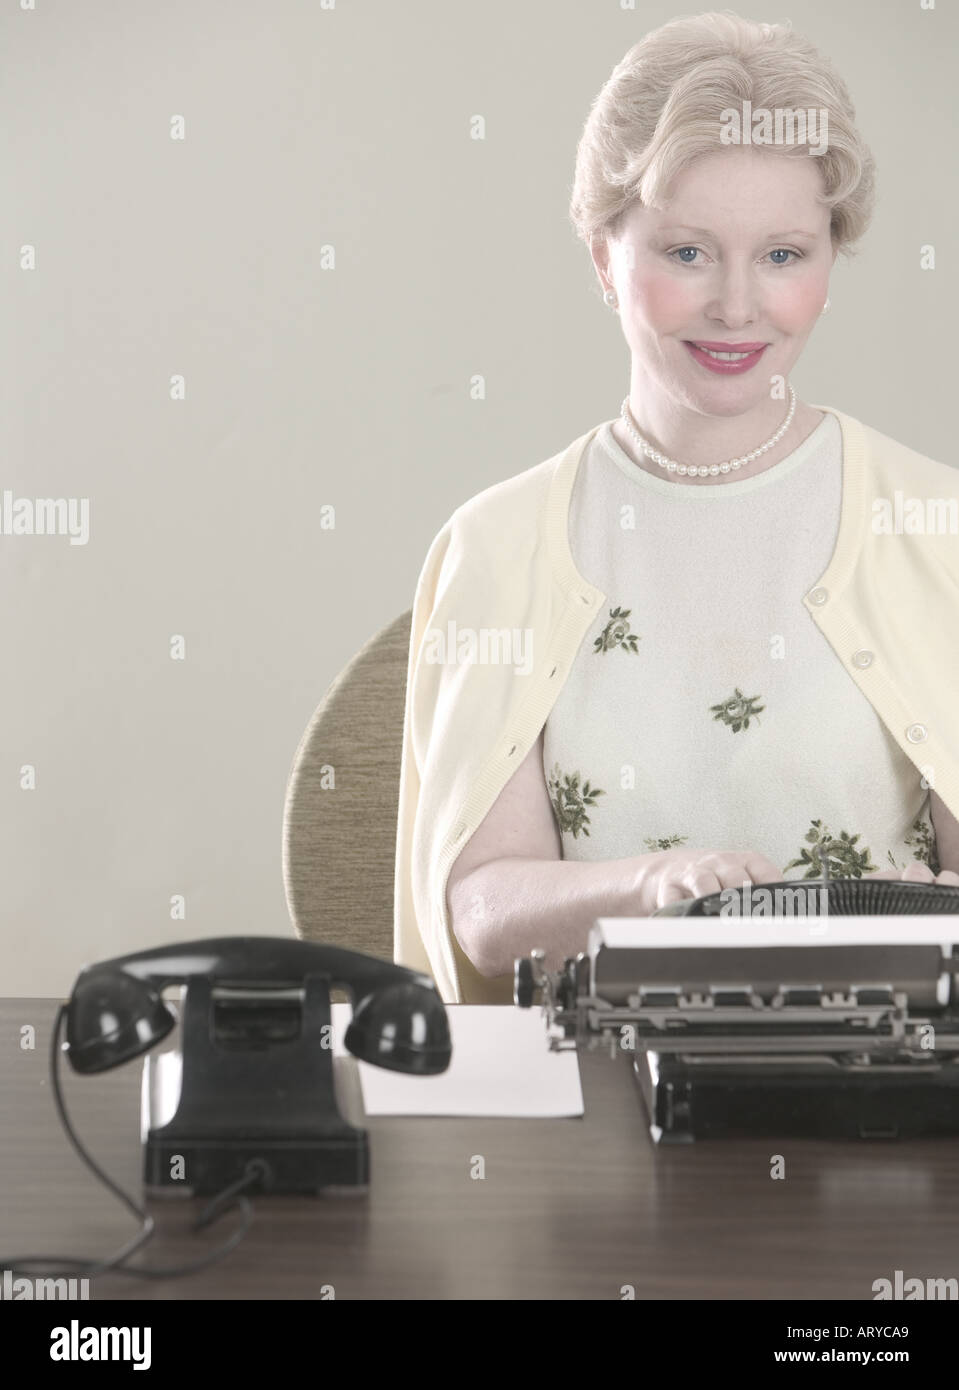 Woman at desk with typewriter - Stock Image